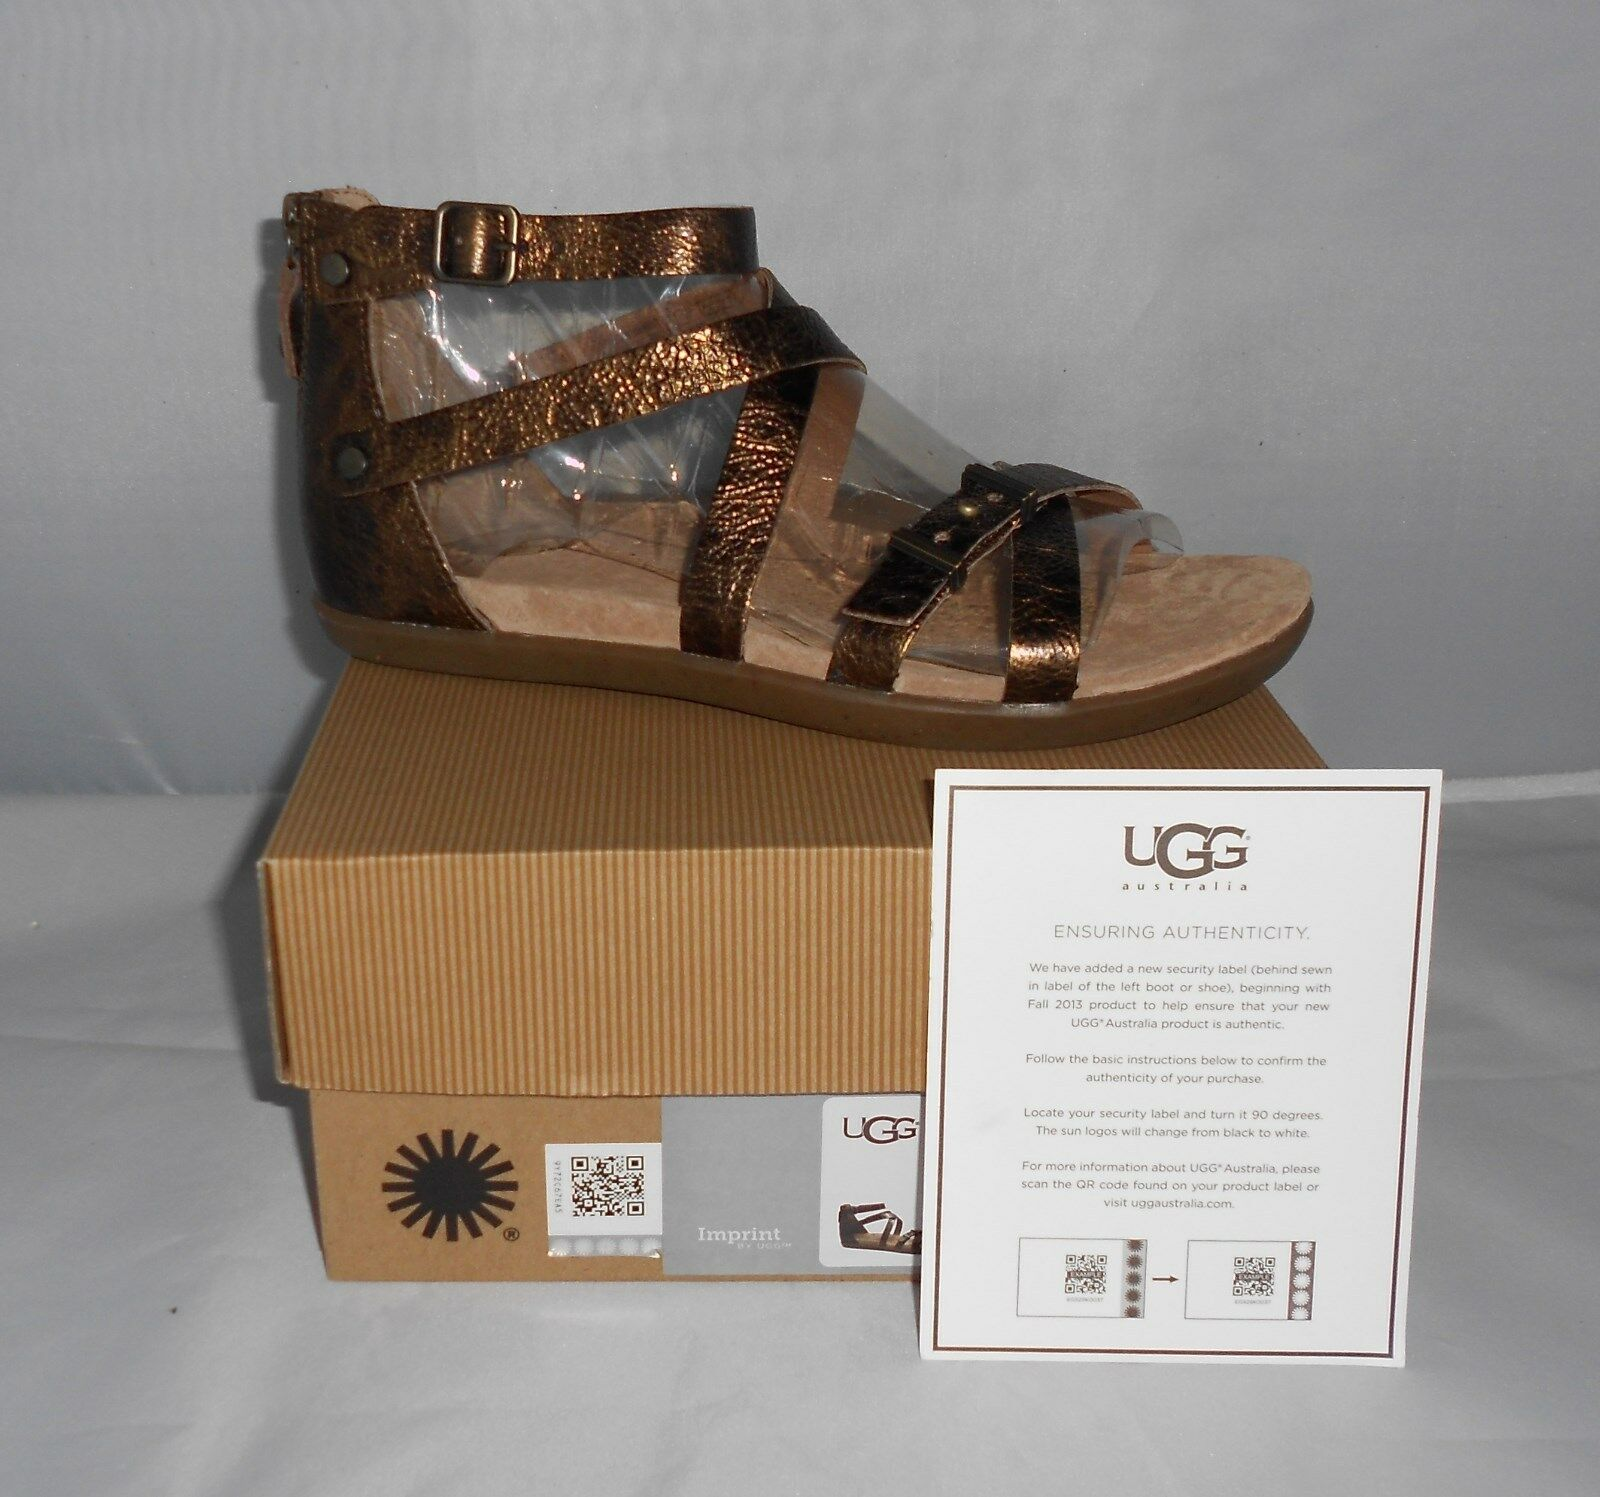 UGG NŐI CHERIE GOLD PONY BROWN BŐR GLADIATOR SANDALS MÉRET 8 NEW IN BOX